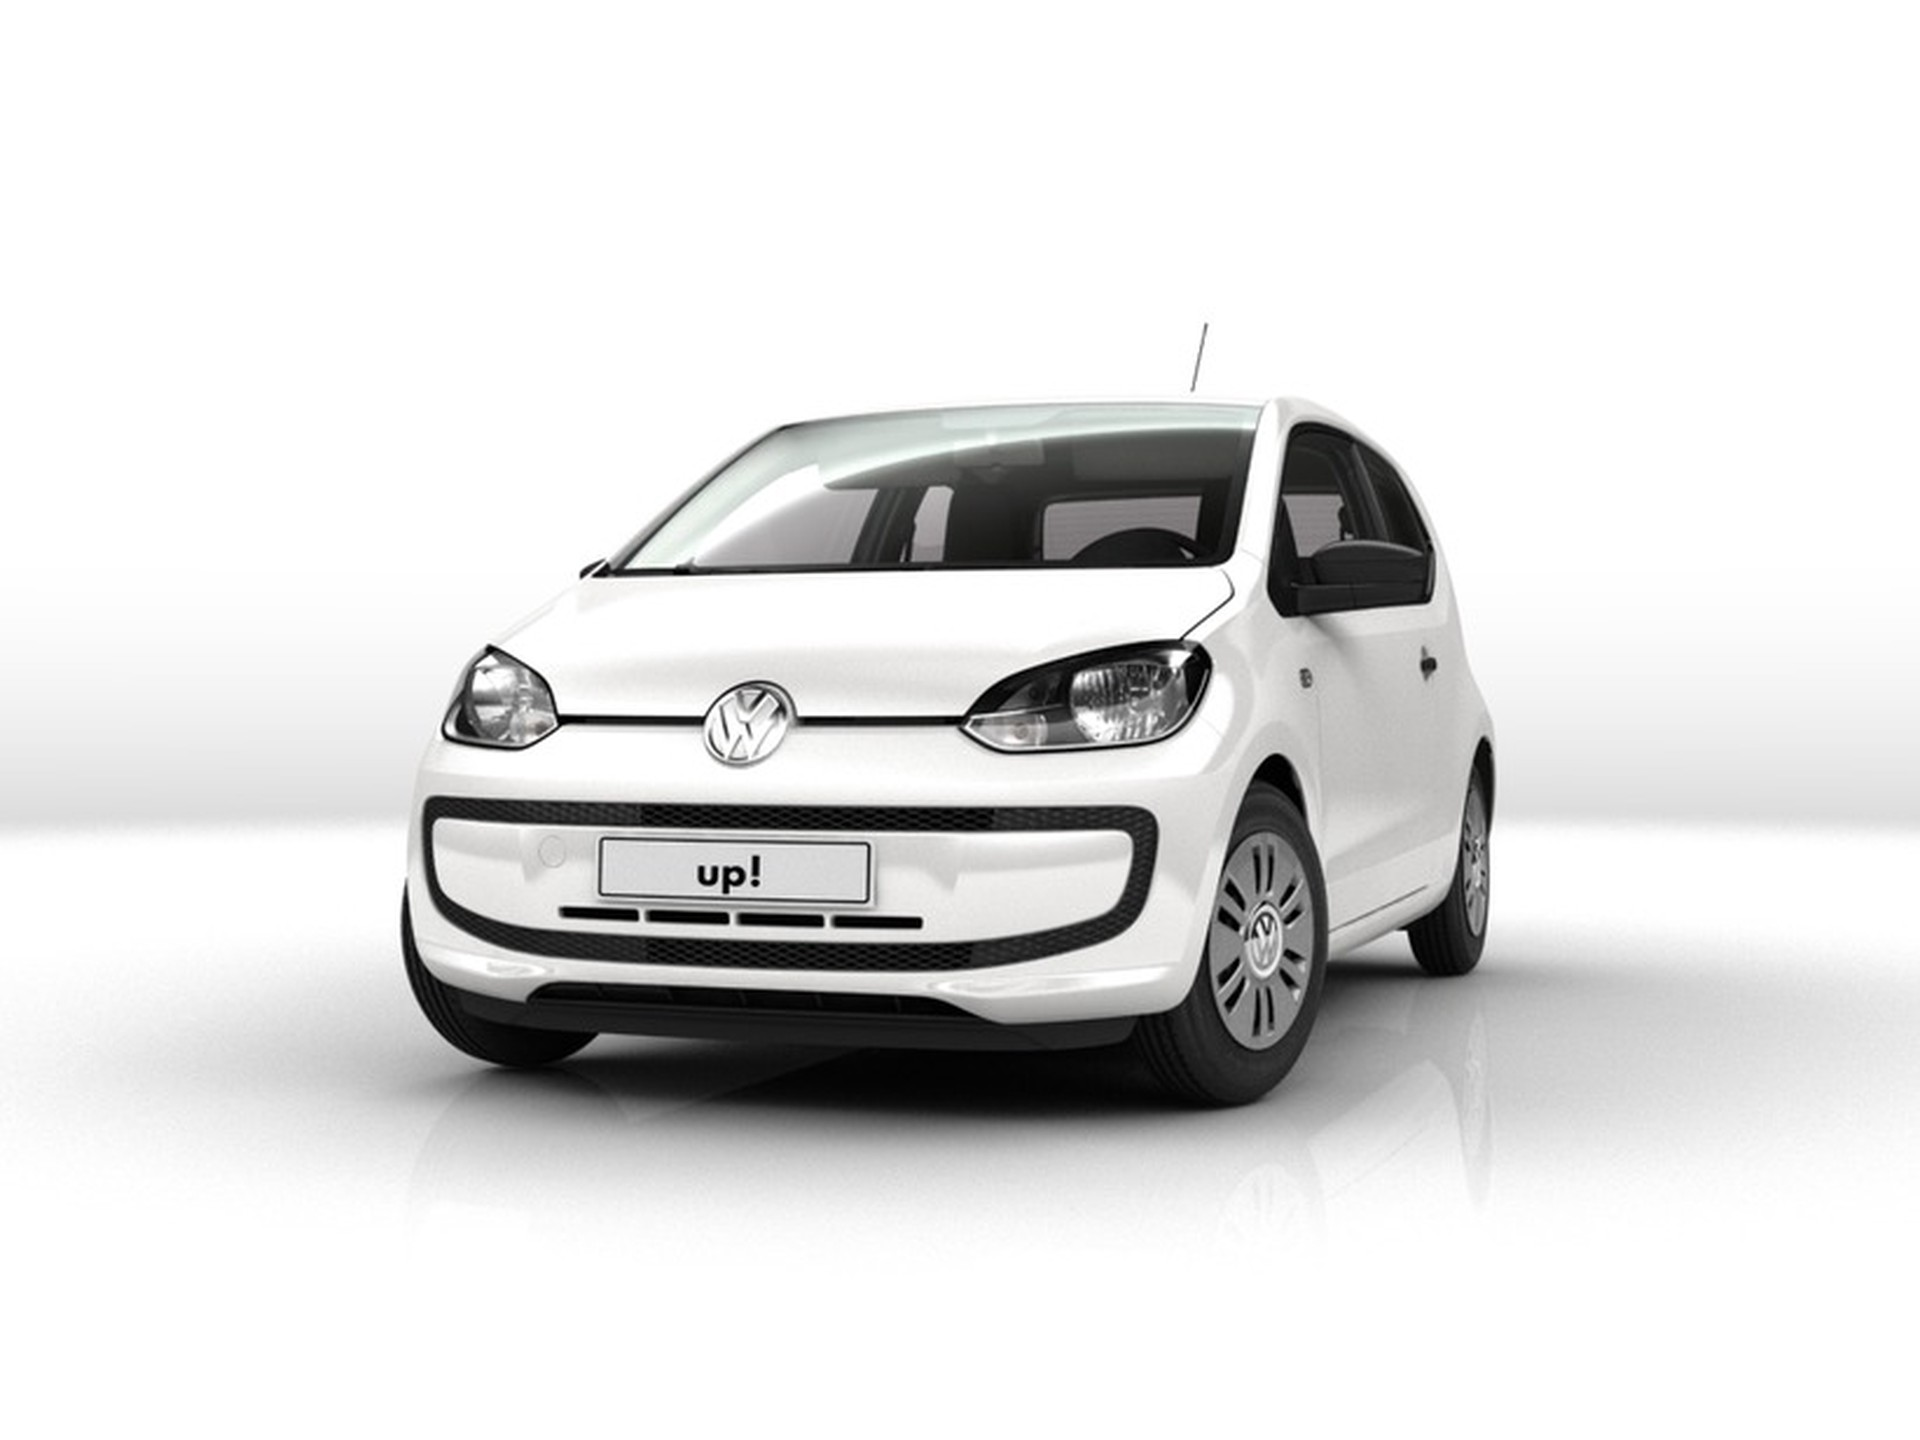 Volkswagen-up!-1.0 take up! BlueMotion-nieuweautodeal.nl